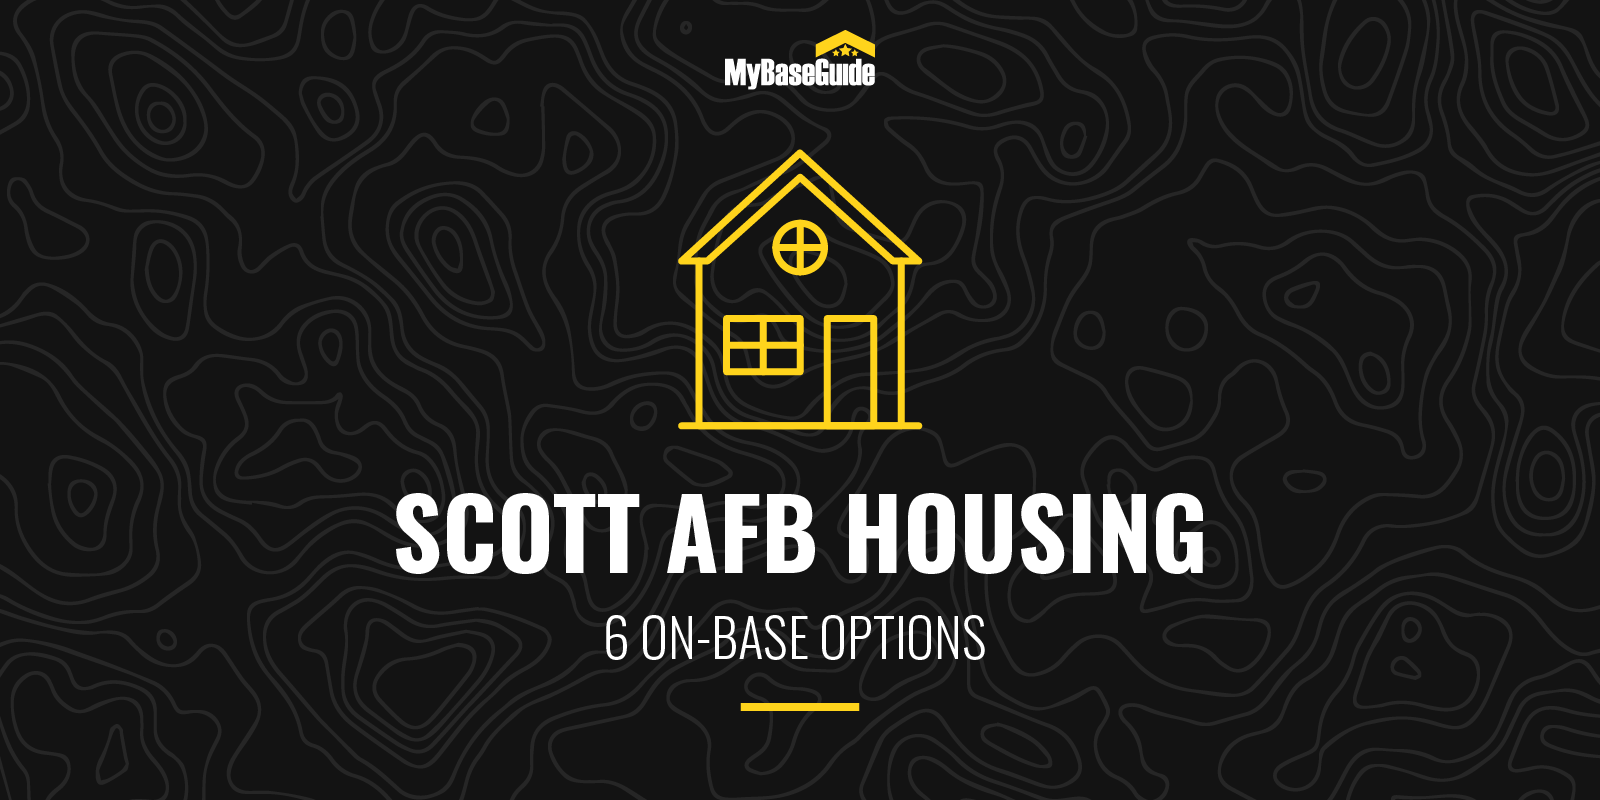 Scott AFB Housing Options